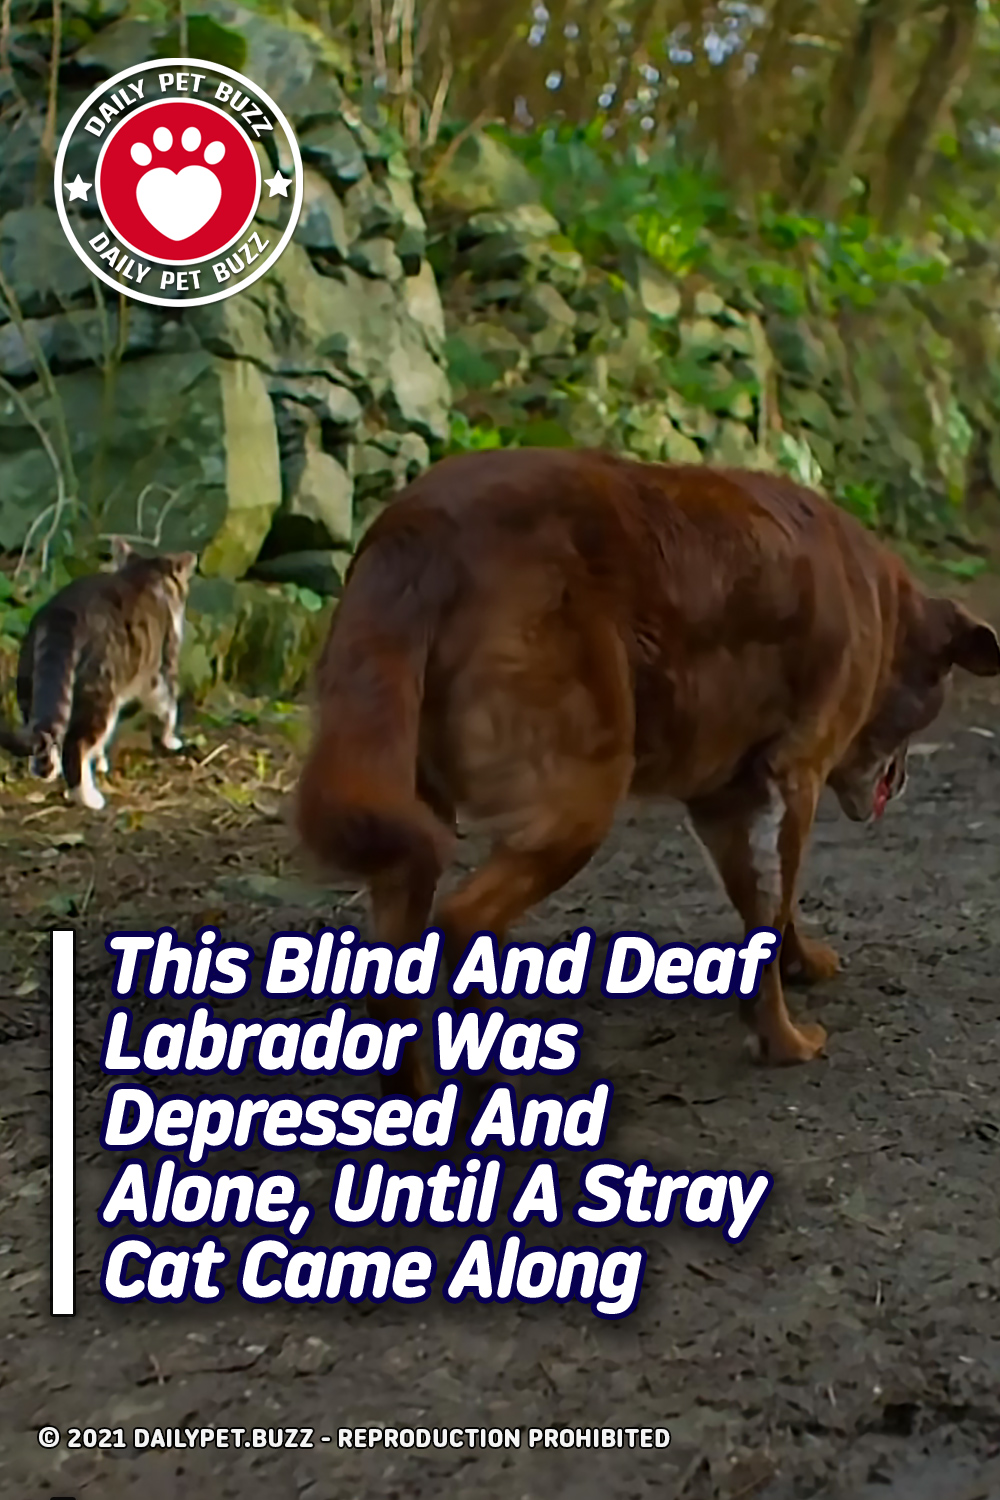 This Blind And Deaf Labrador Was Depressed And Alone Until A Stray Cat Came Along